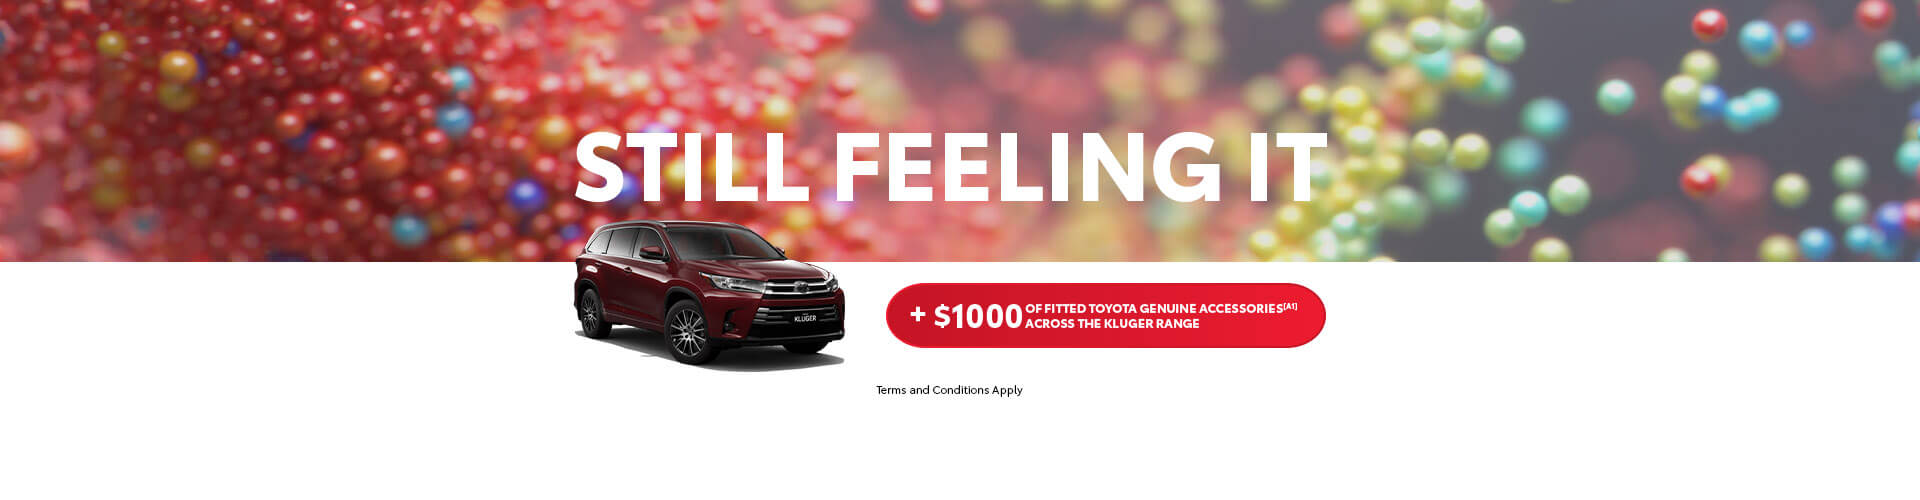 Toyota Kluger Southern Region Offer